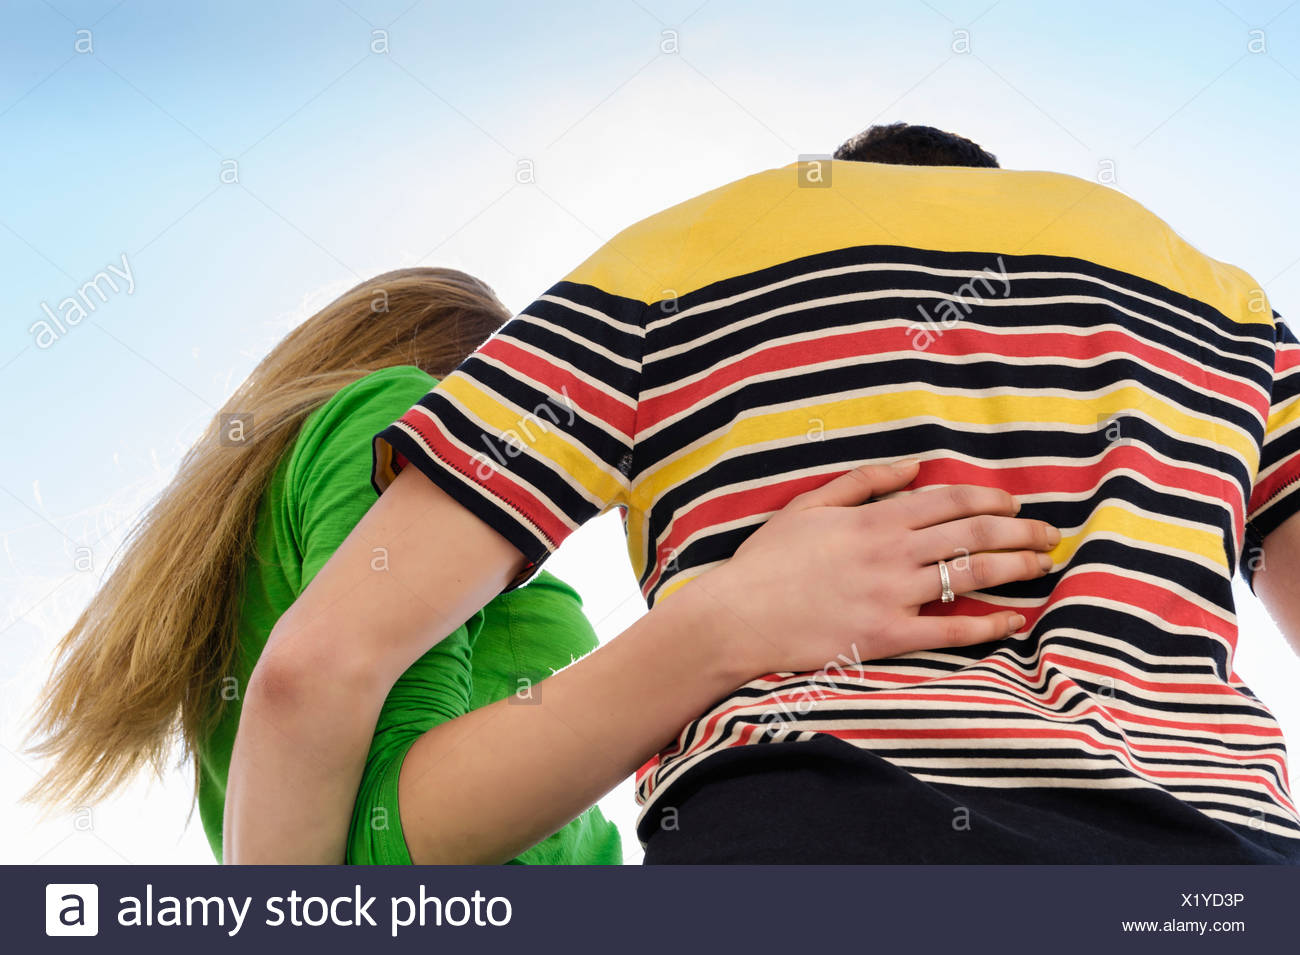 Couple with arms around each other against sky, low angle - Stock Image